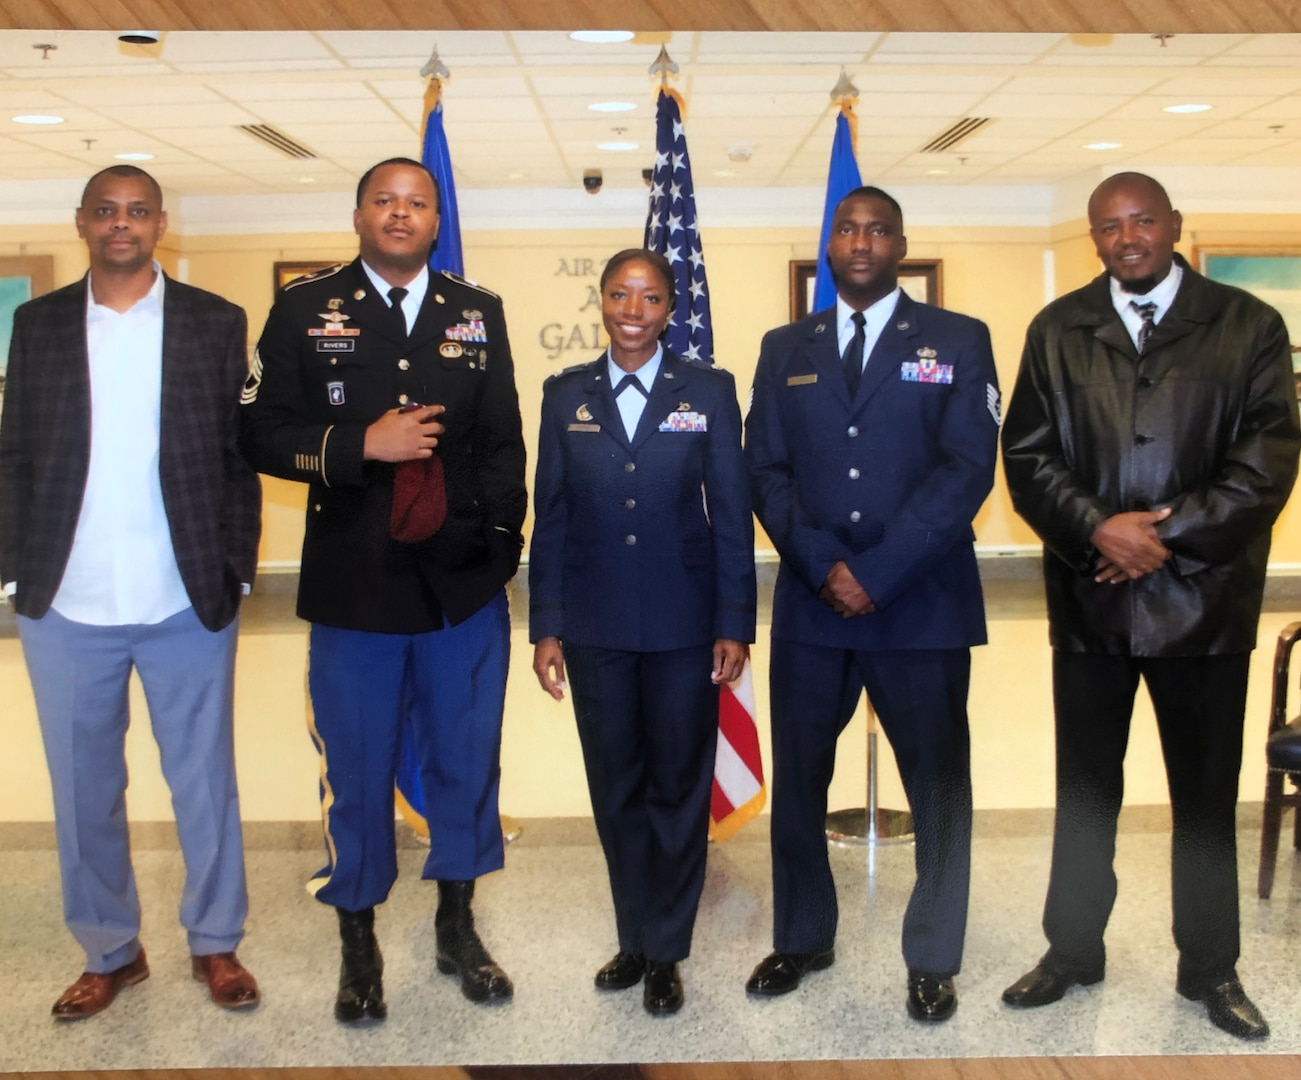 Lt. Col. Miriam Carter poses for a photo with her brothers (from left to right) Gerod Baldeo, MSG Ephraim Rivers, TSgt Collinsworth Ayers and Solomon Rivers during her promotion ceremony at the Pentagon, September 2018. (Courtesy Photo)